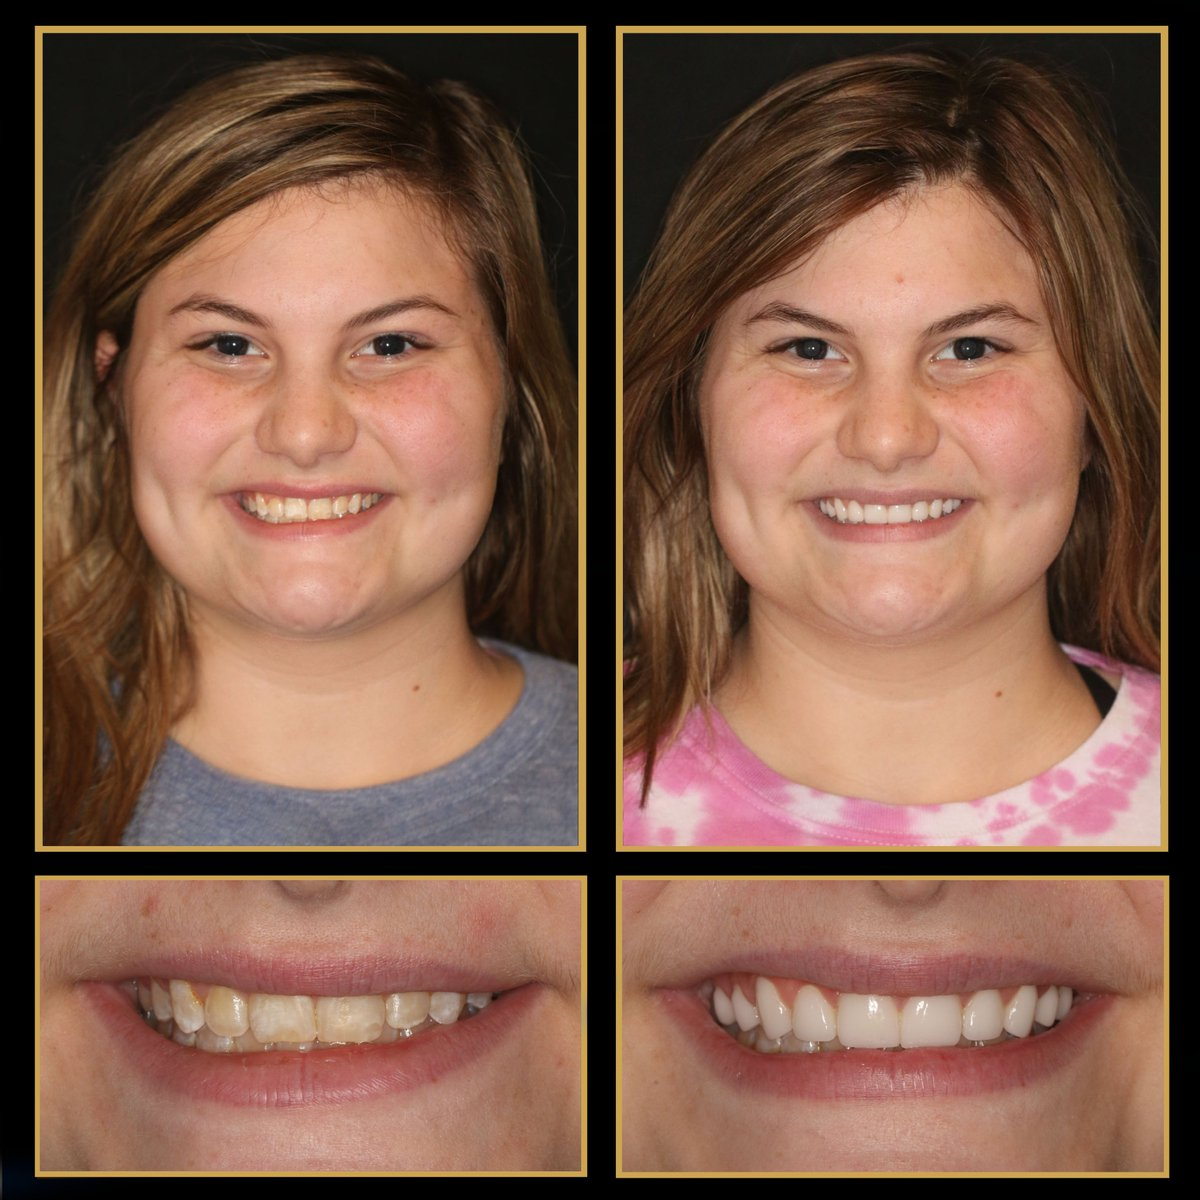 When it comes to your smile, we want to give you a beautiful, natural-looking smile. Our patients have a choice with porcelain #veneers, crowns, bridges, #dentalimplants and #reconstructivedentistry to pick their perfect shade of white. http://TheCosmeticDentistsOfAustin.com #CosmeticDentistpic.twitter.com/tCNCgGCvRh